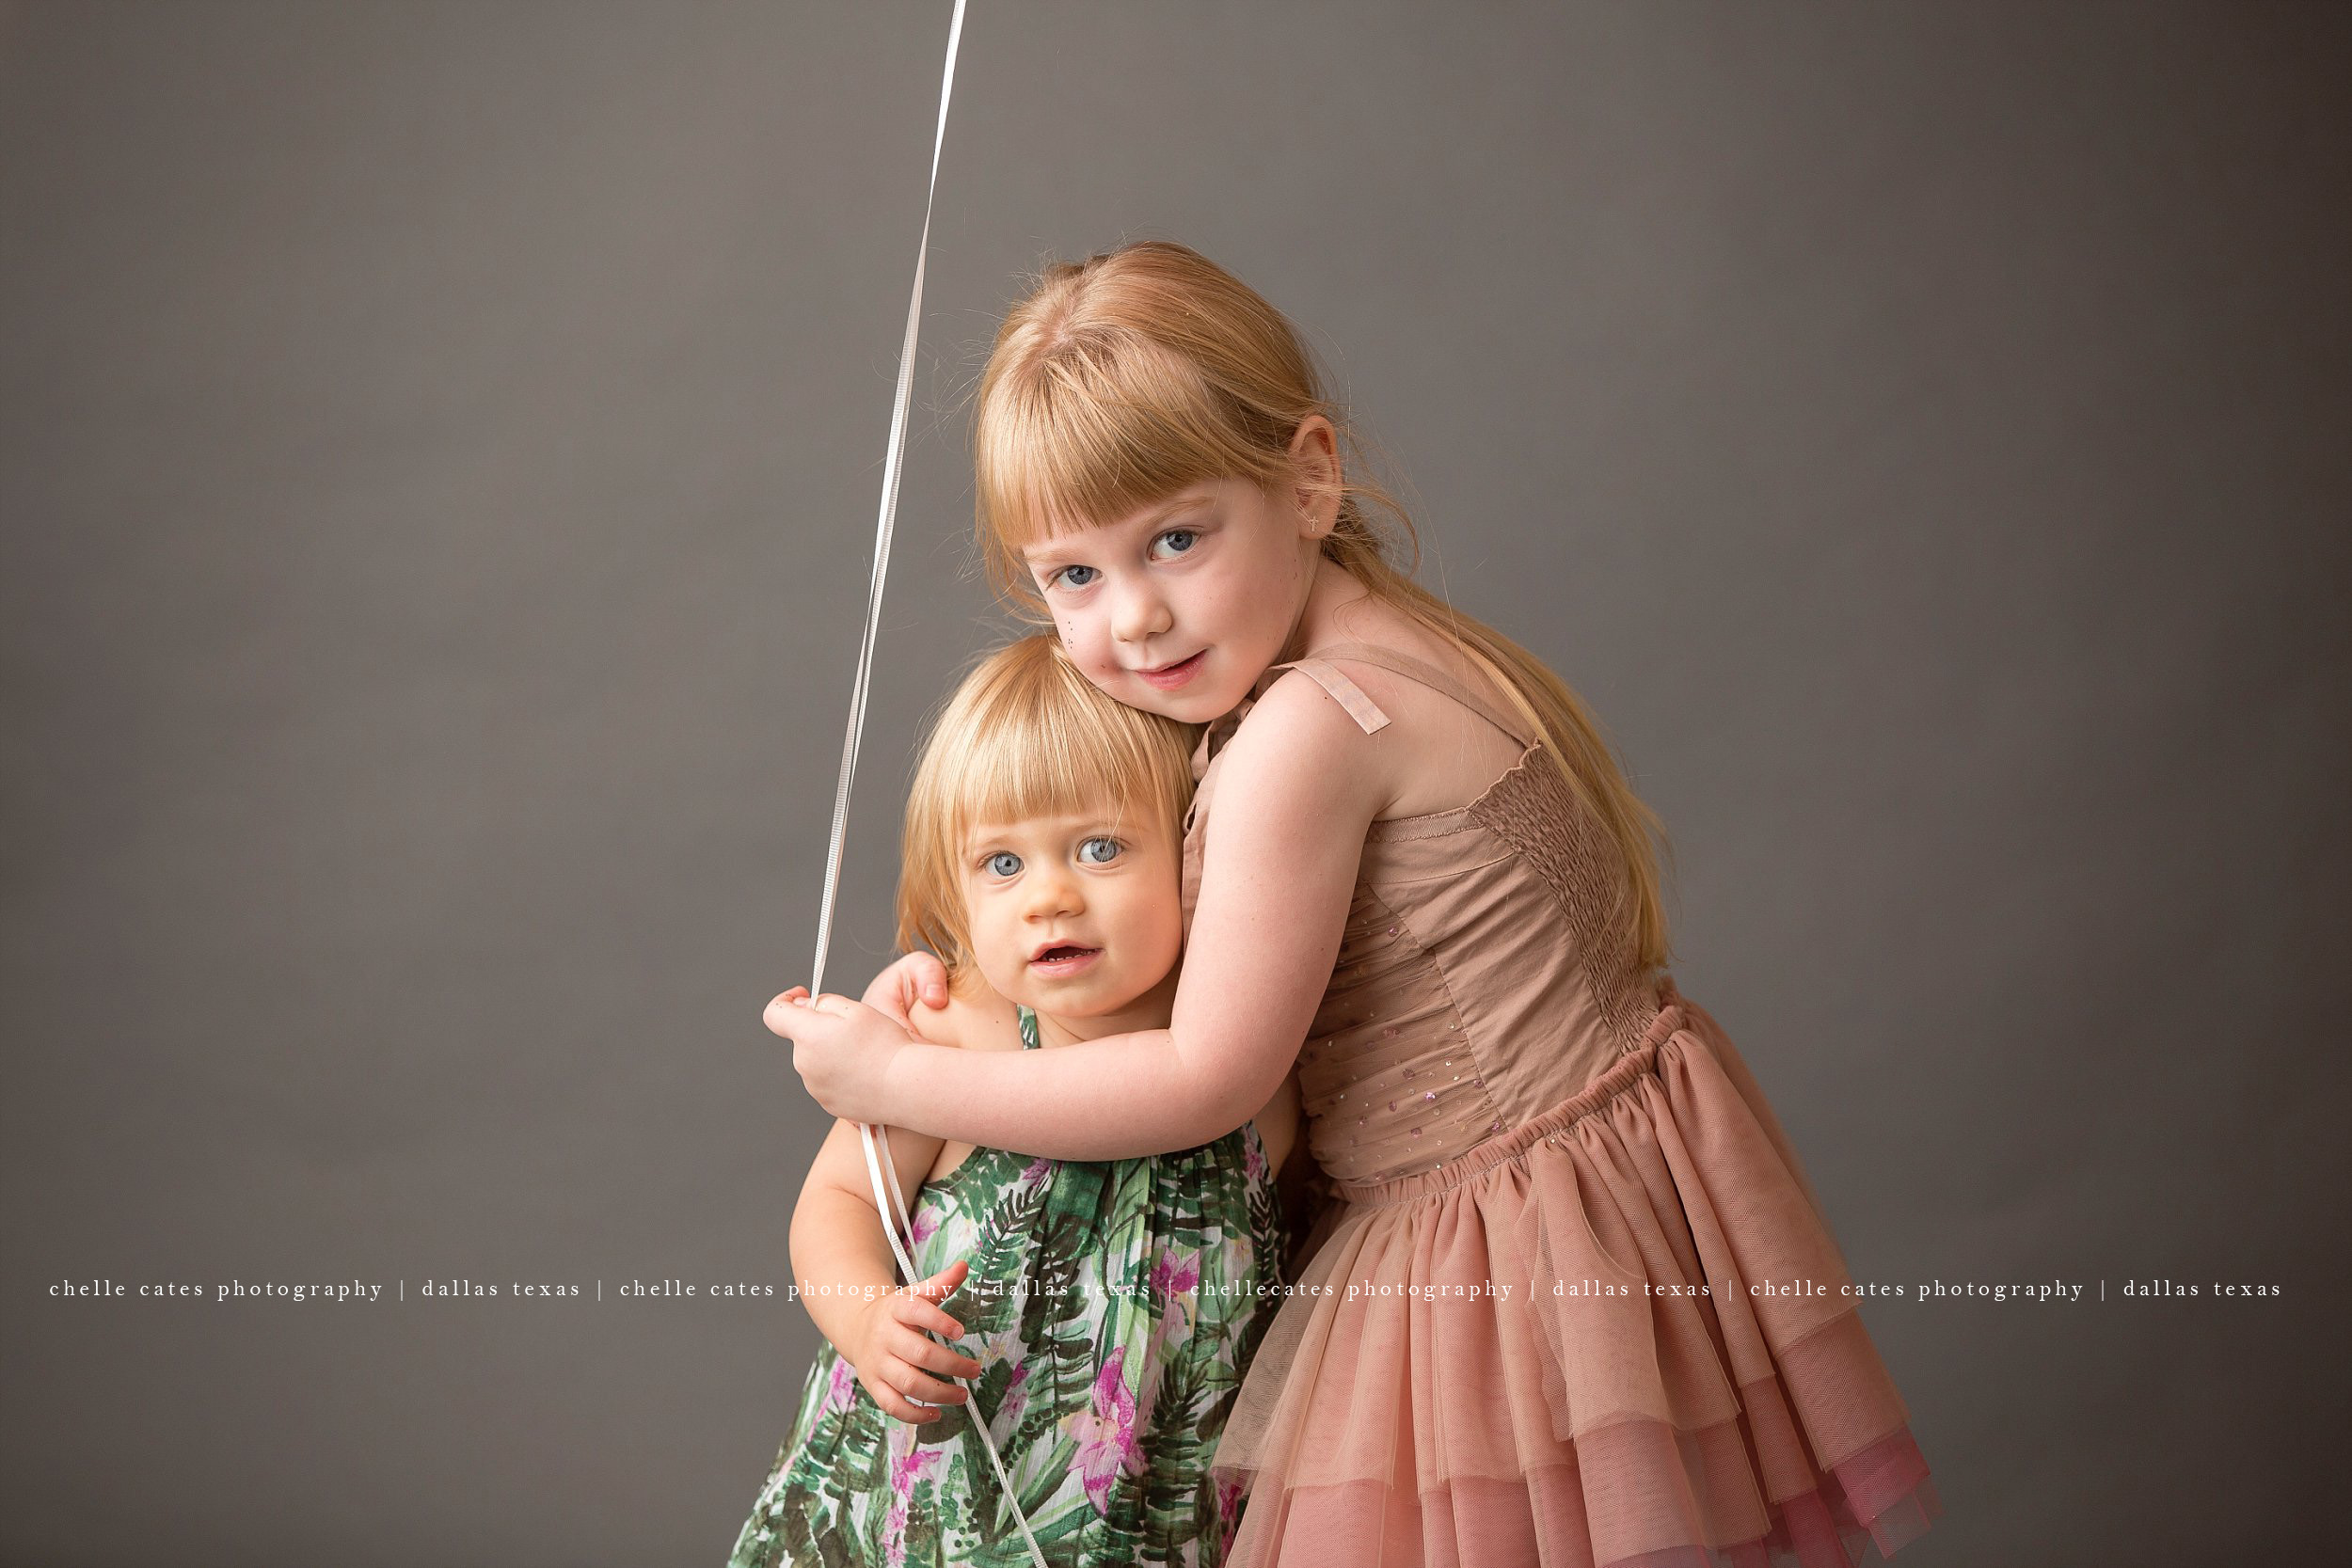 Portrait of two girls who are sisters. Photographed at Chelle Cates Photography Studio in Dallas Texas.